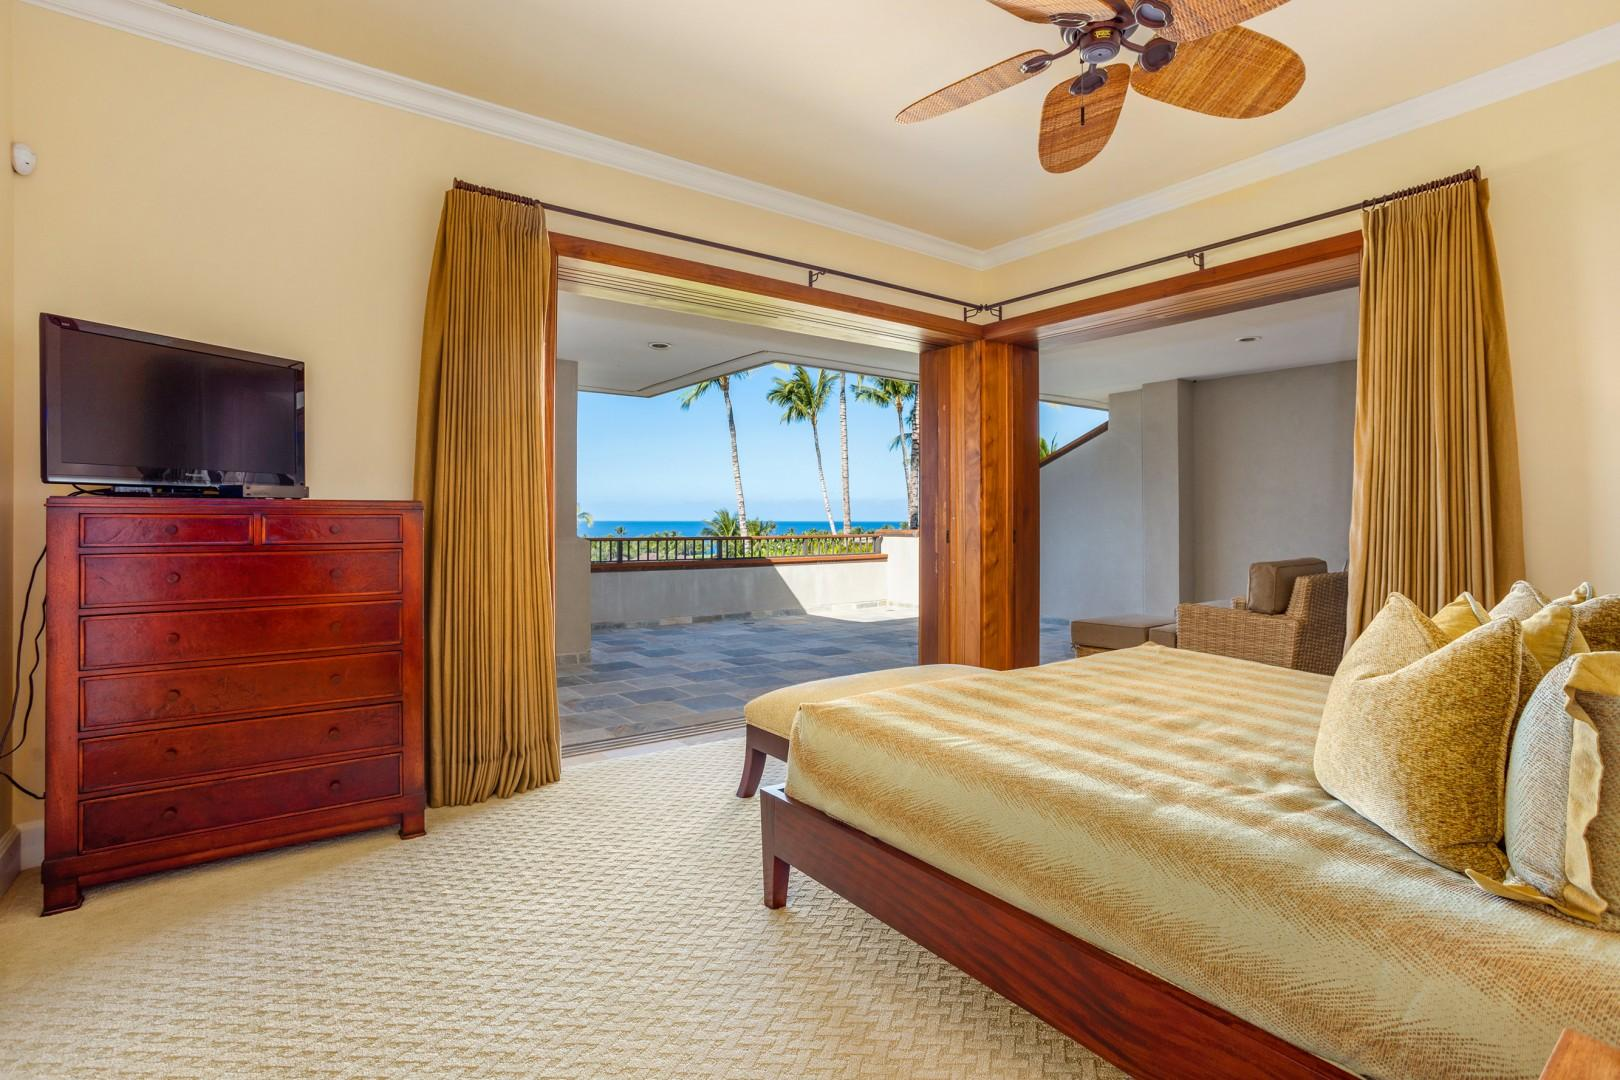 Spacious, breezy bedrooms with gorgeous views!